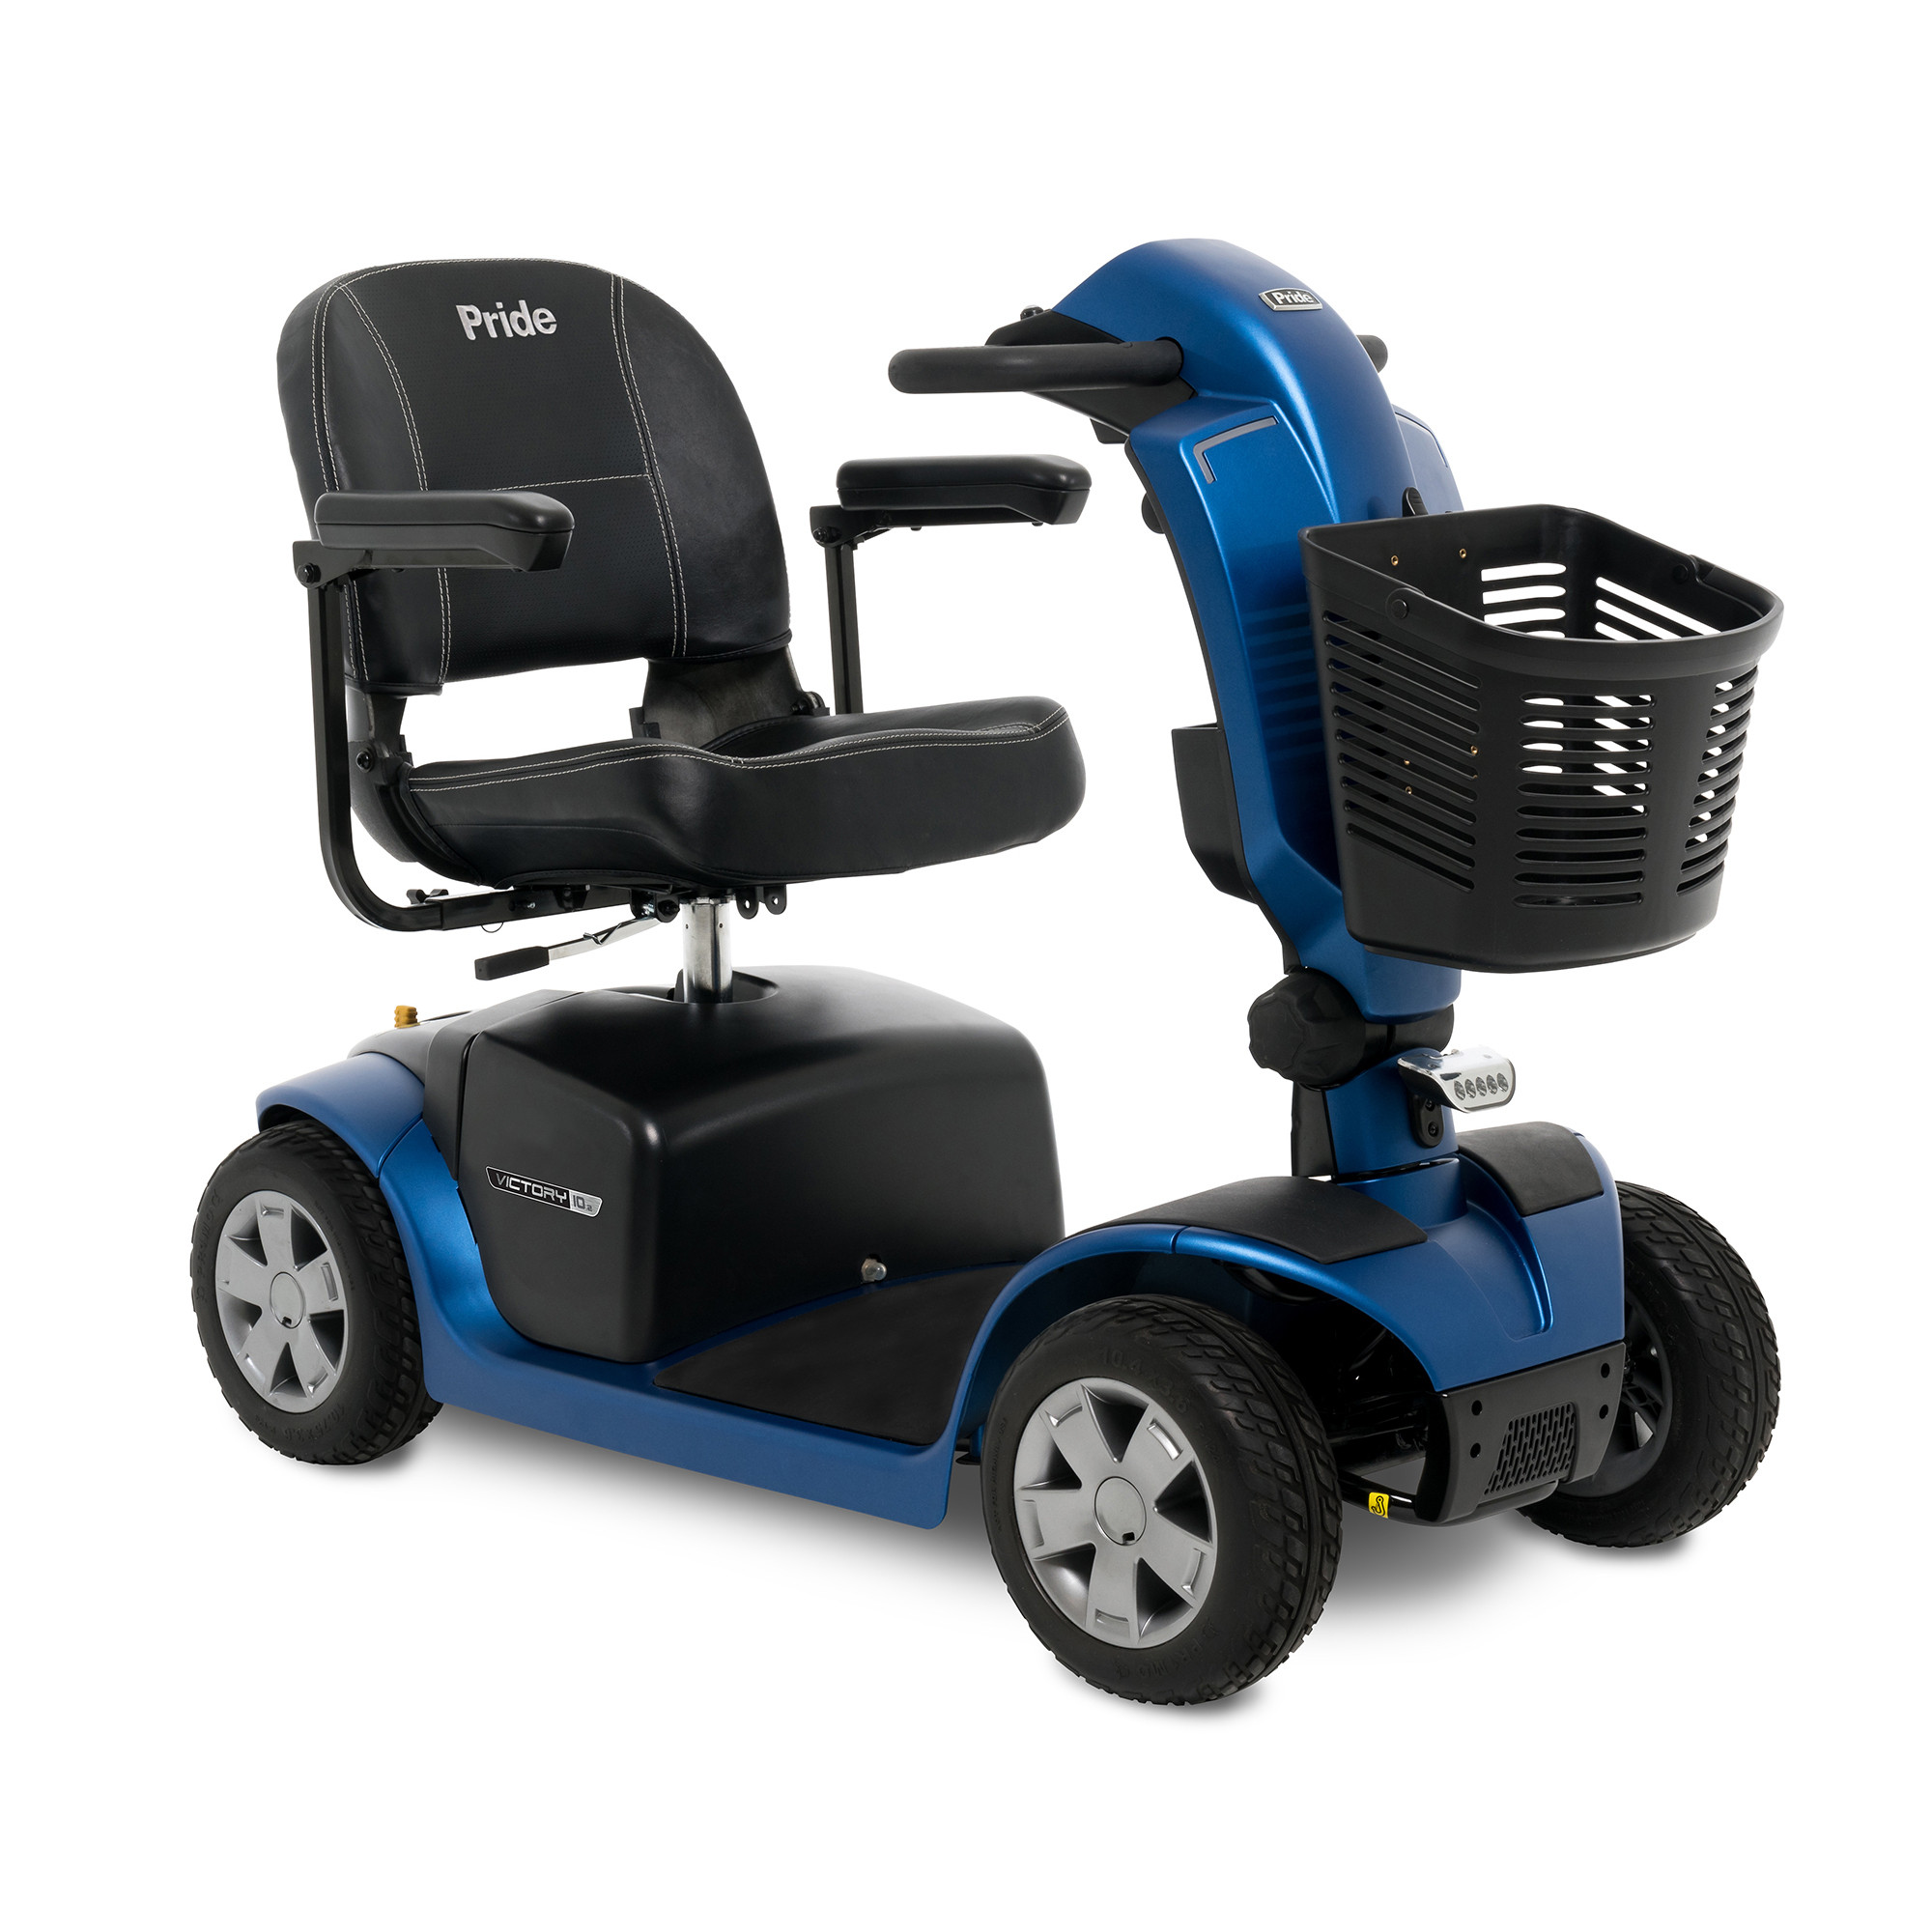 pride victory 10 2 4 wheel mobility scooter free. Black Bedroom Furniture Sets. Home Design Ideas